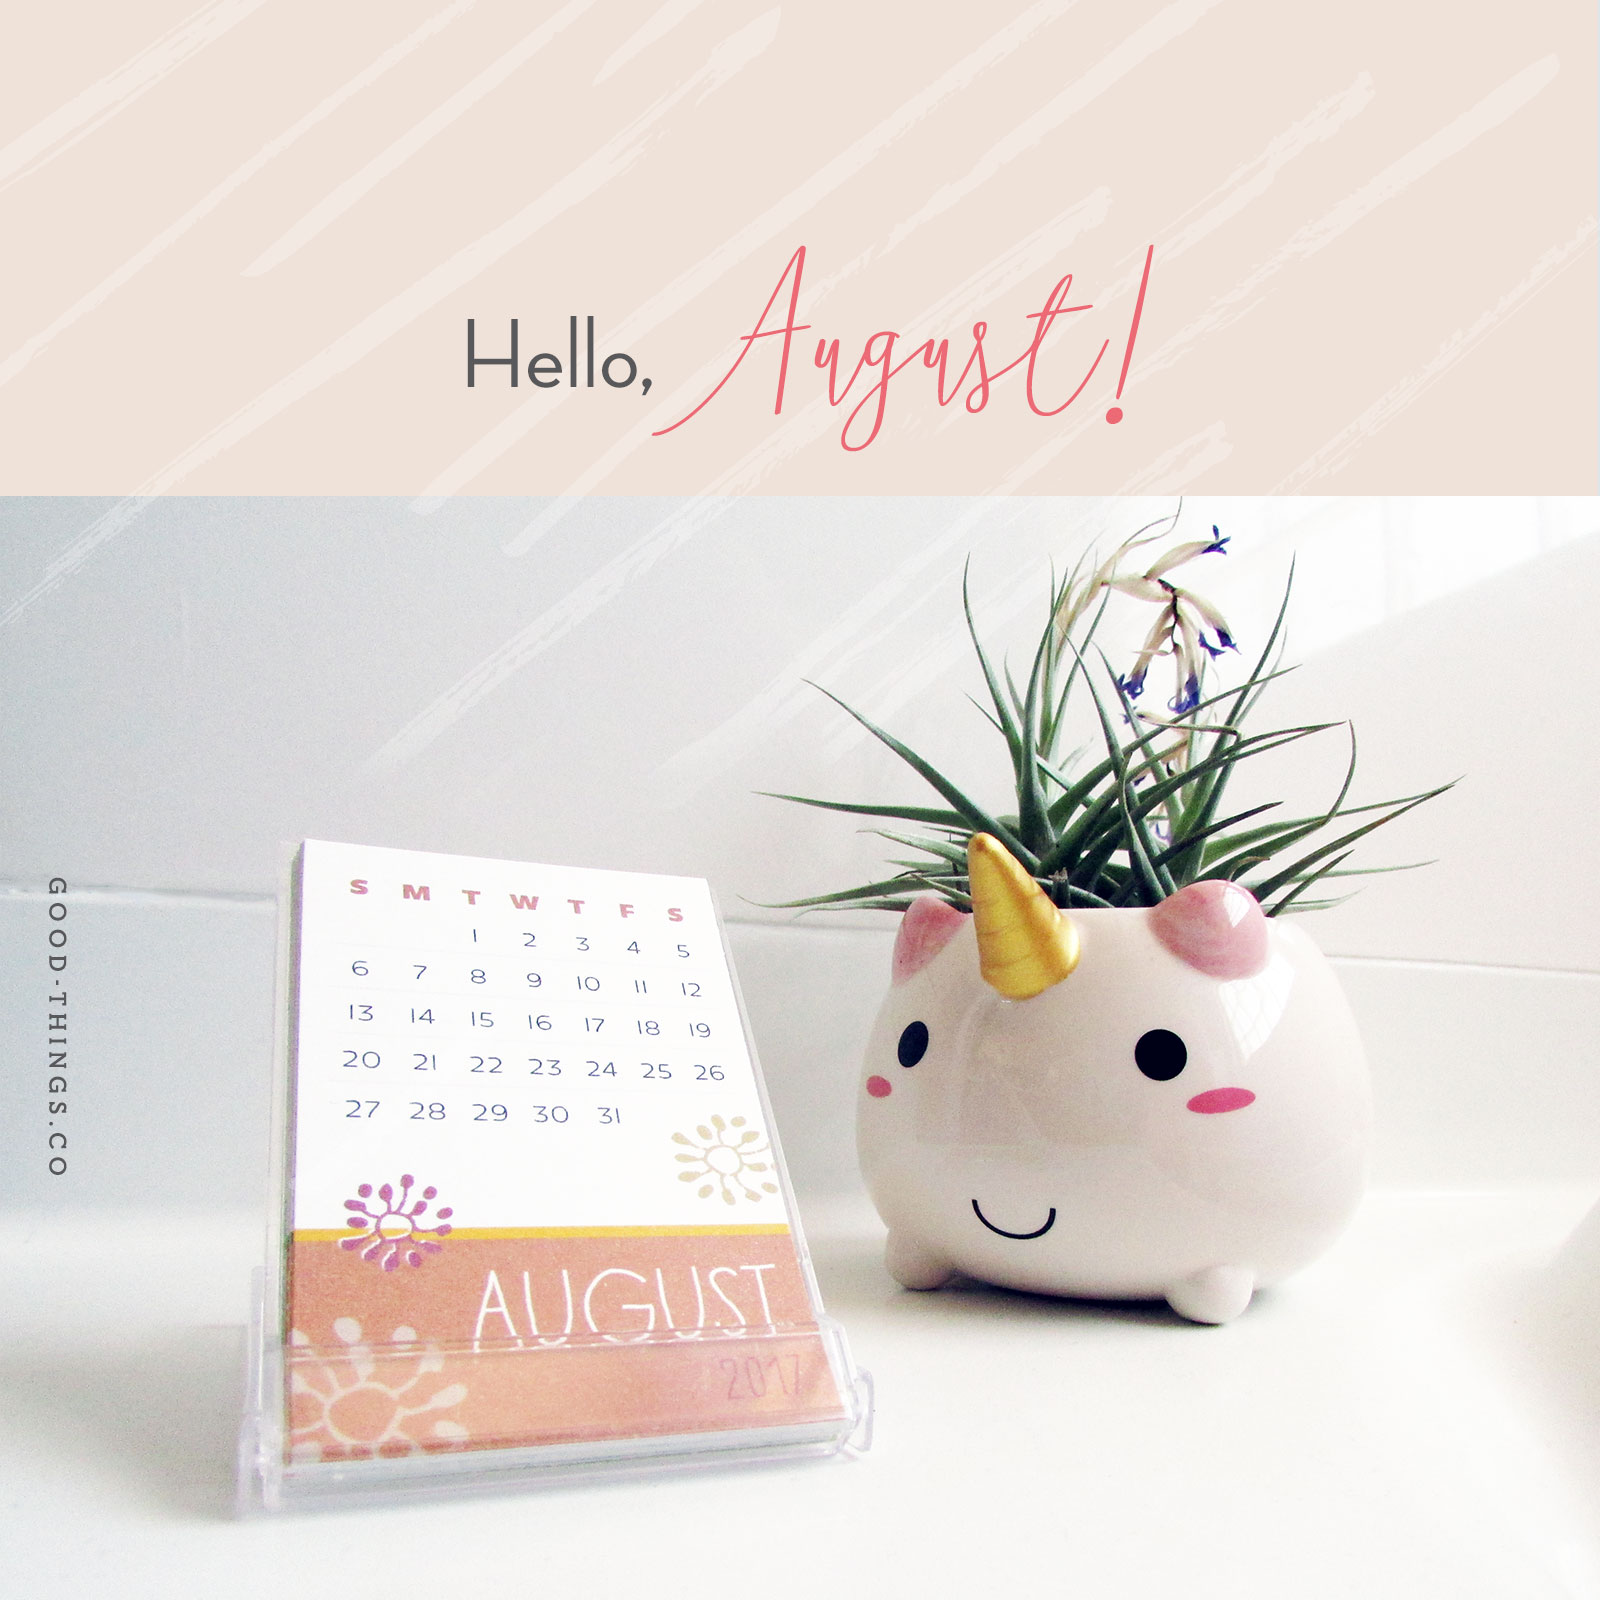 Hello August August 1 2017 Good Things Blog